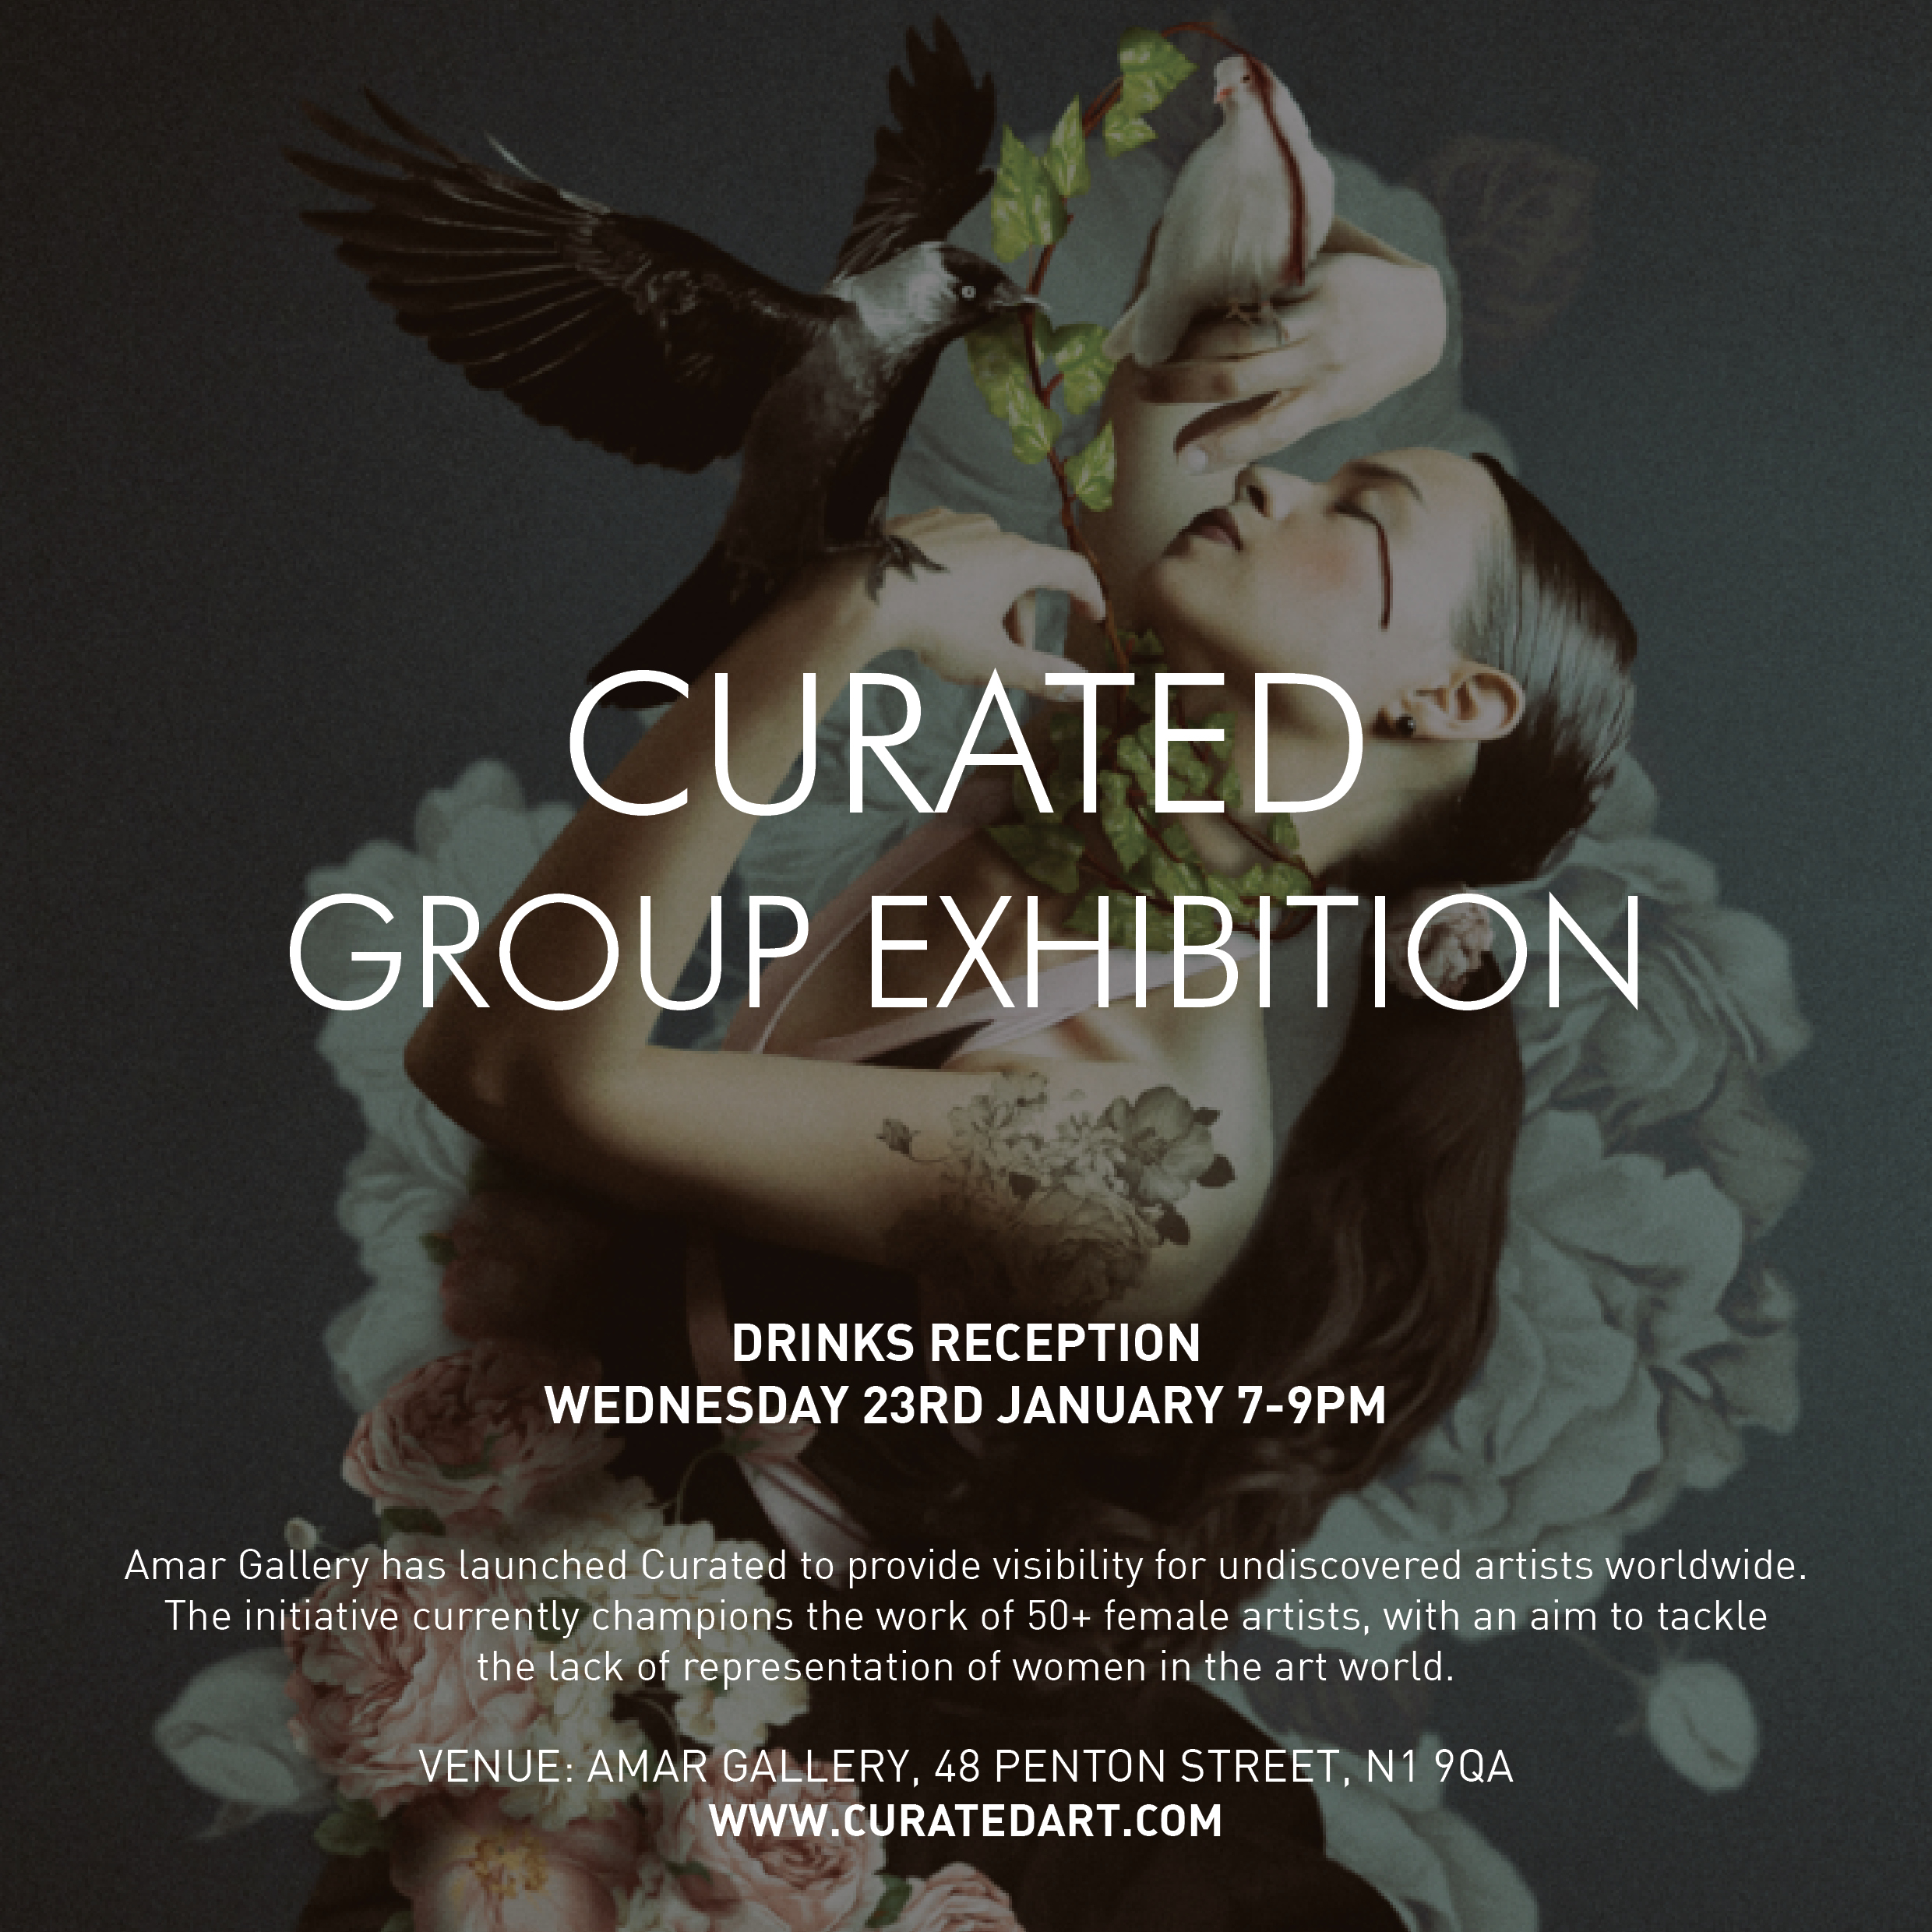 RSVP - Click above to RSVP for the drinks reception on 23 January 2019. The exhibition itself is on until Sunday 27 January 2019.